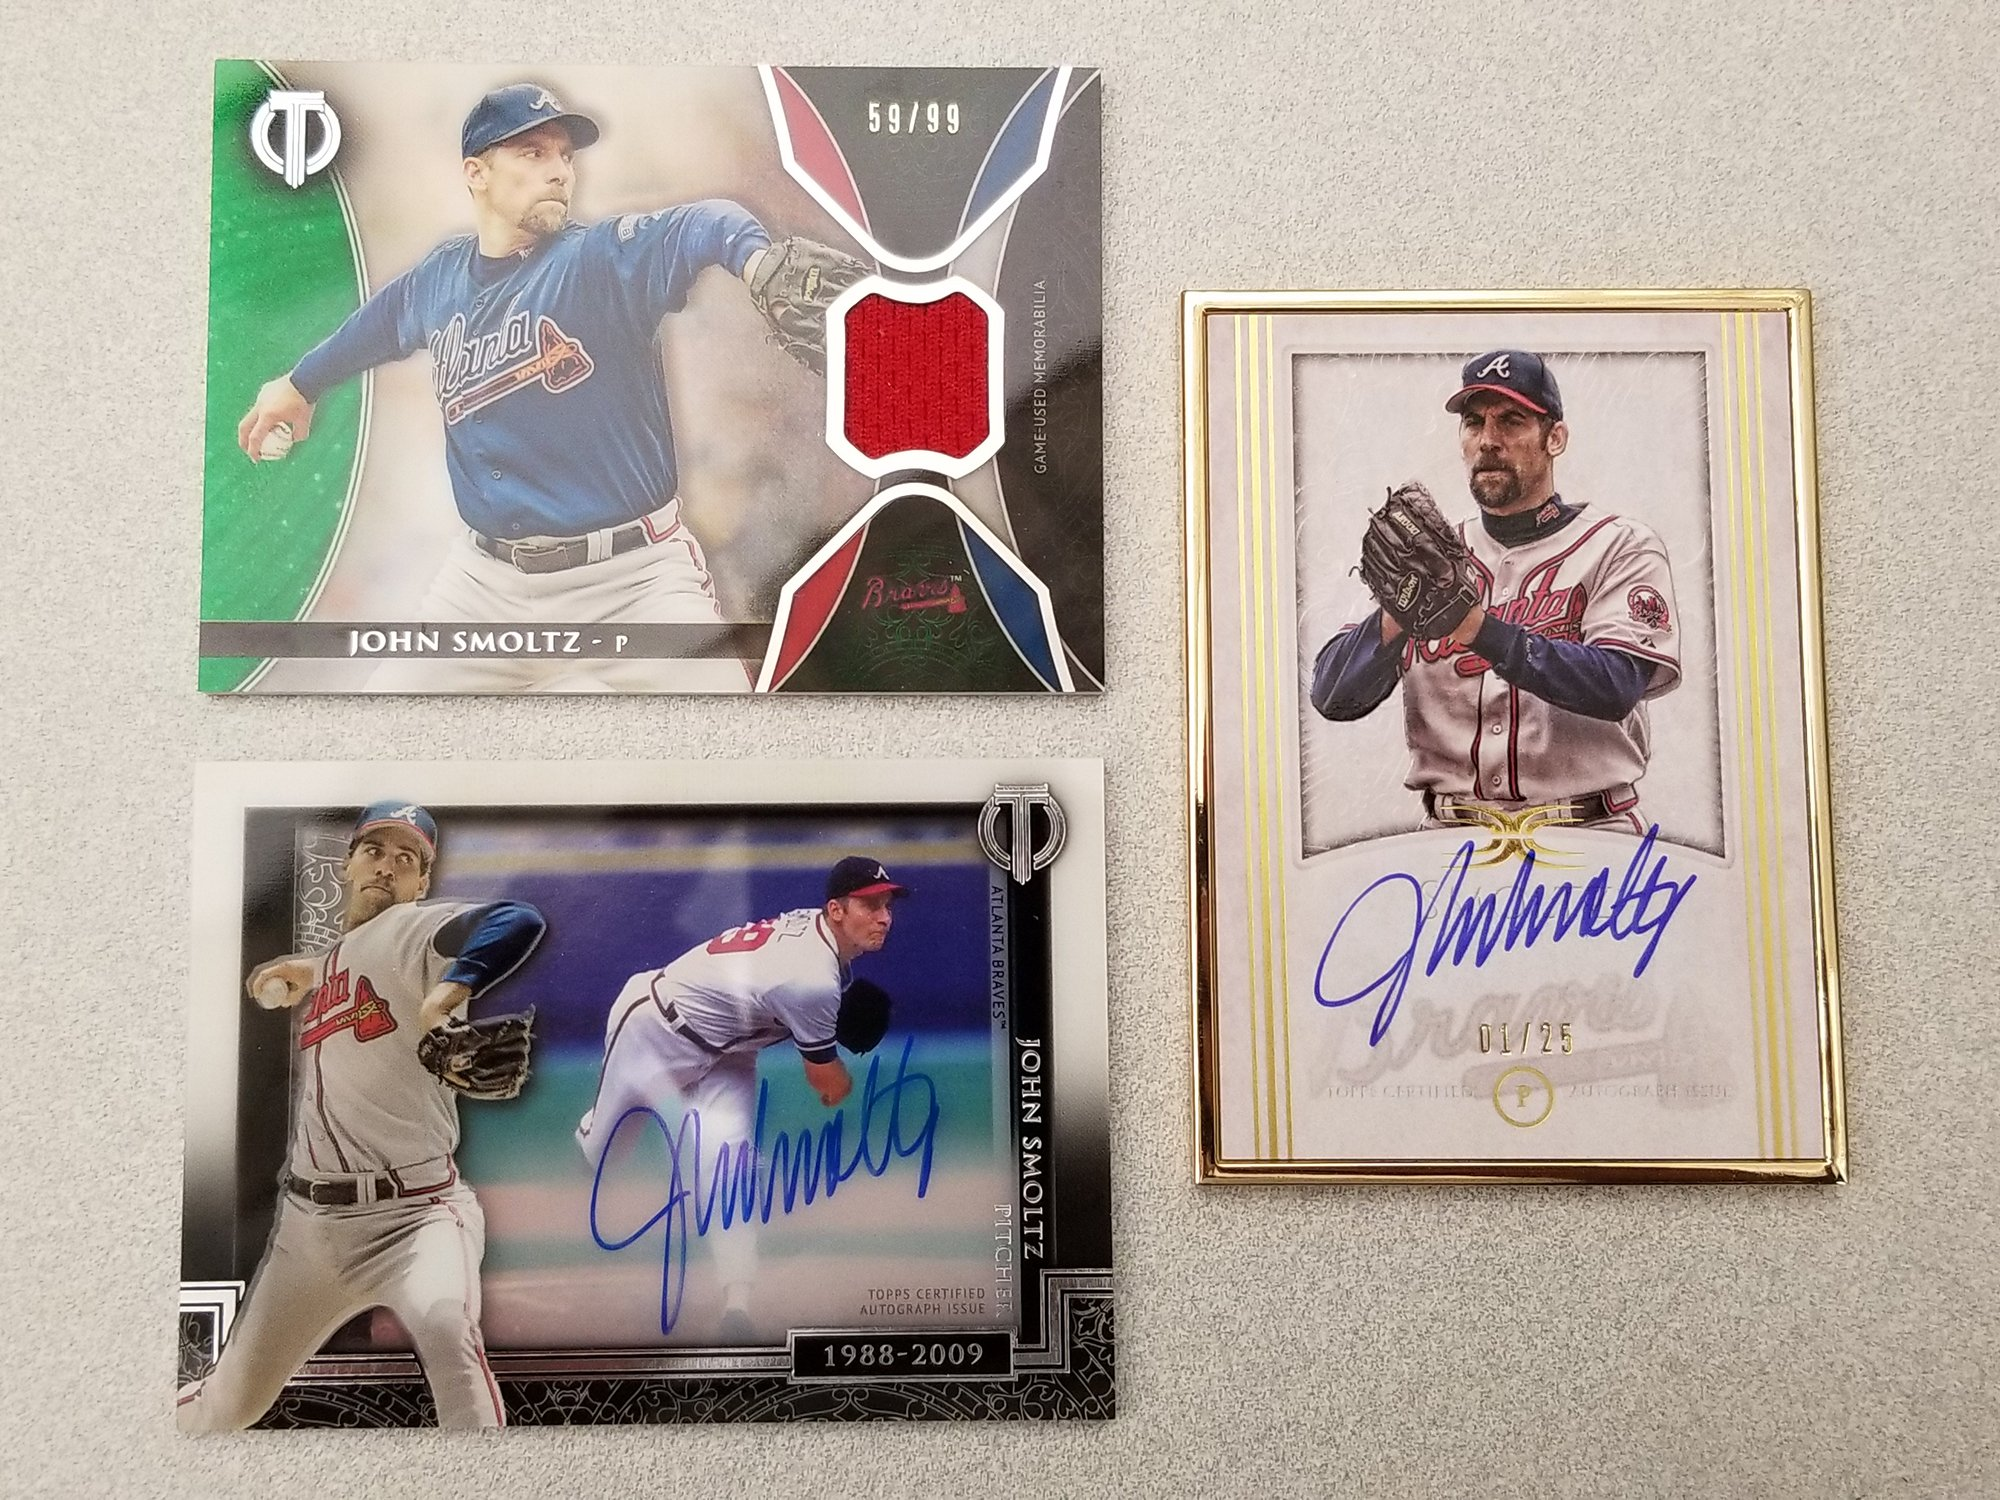 It's Smoltzie's 51st birthday! You know what's next.     RT for a chance to win one of these #MLBCards! https://t.co/7CI1OHfjVg